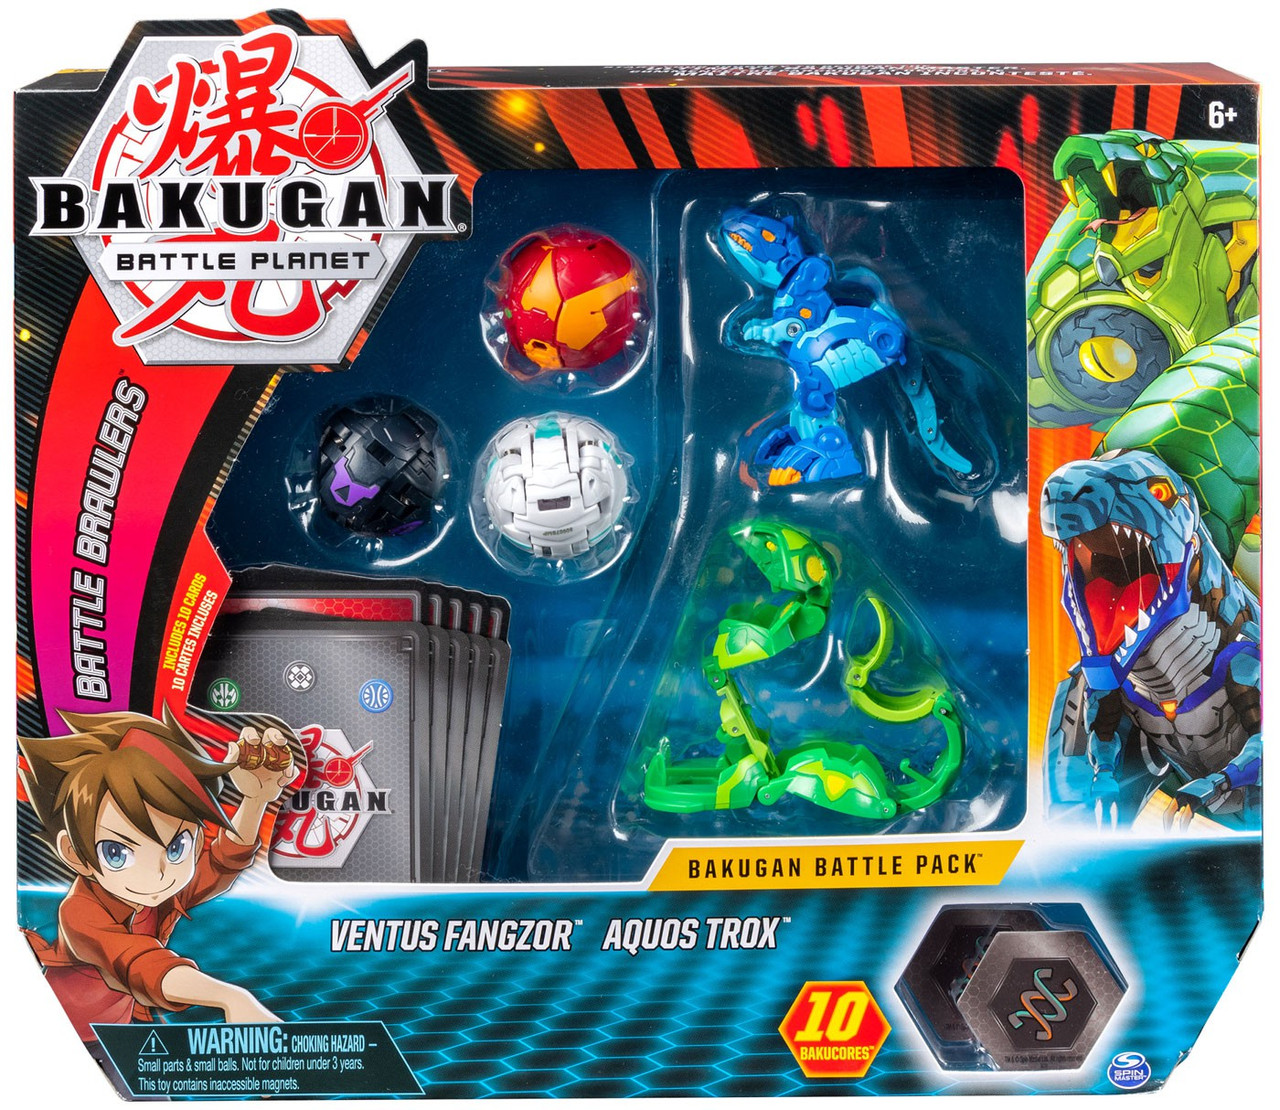 20 Bakugan Promotional Pack Ability Cards includes 3 Characters /& 2 Power Up